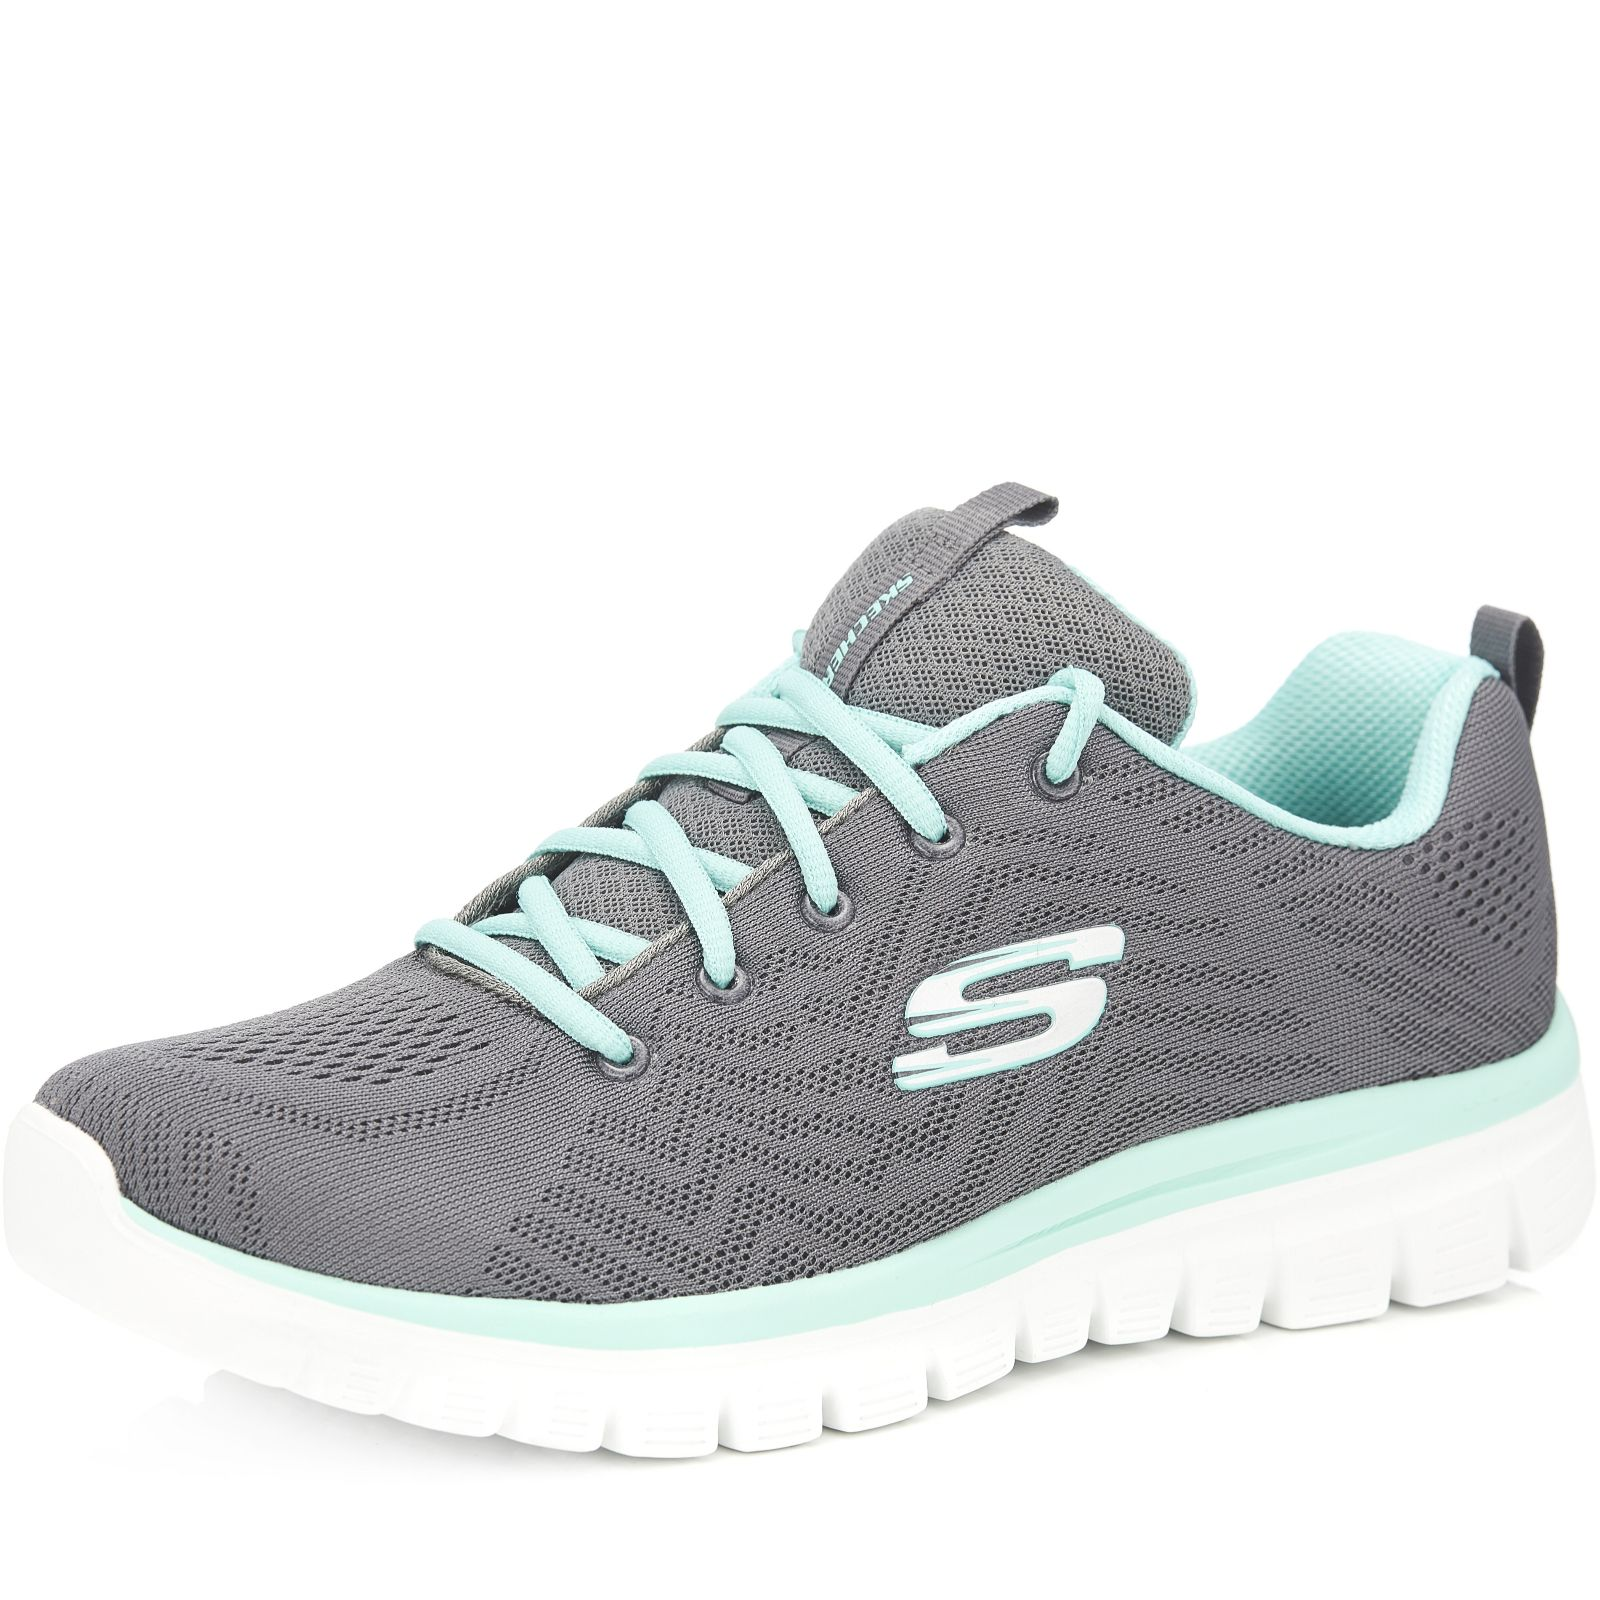 b0ae6cfde0b2 Skechers Graceful Engineered Mesh Lace-Up Trainer with Memory ...